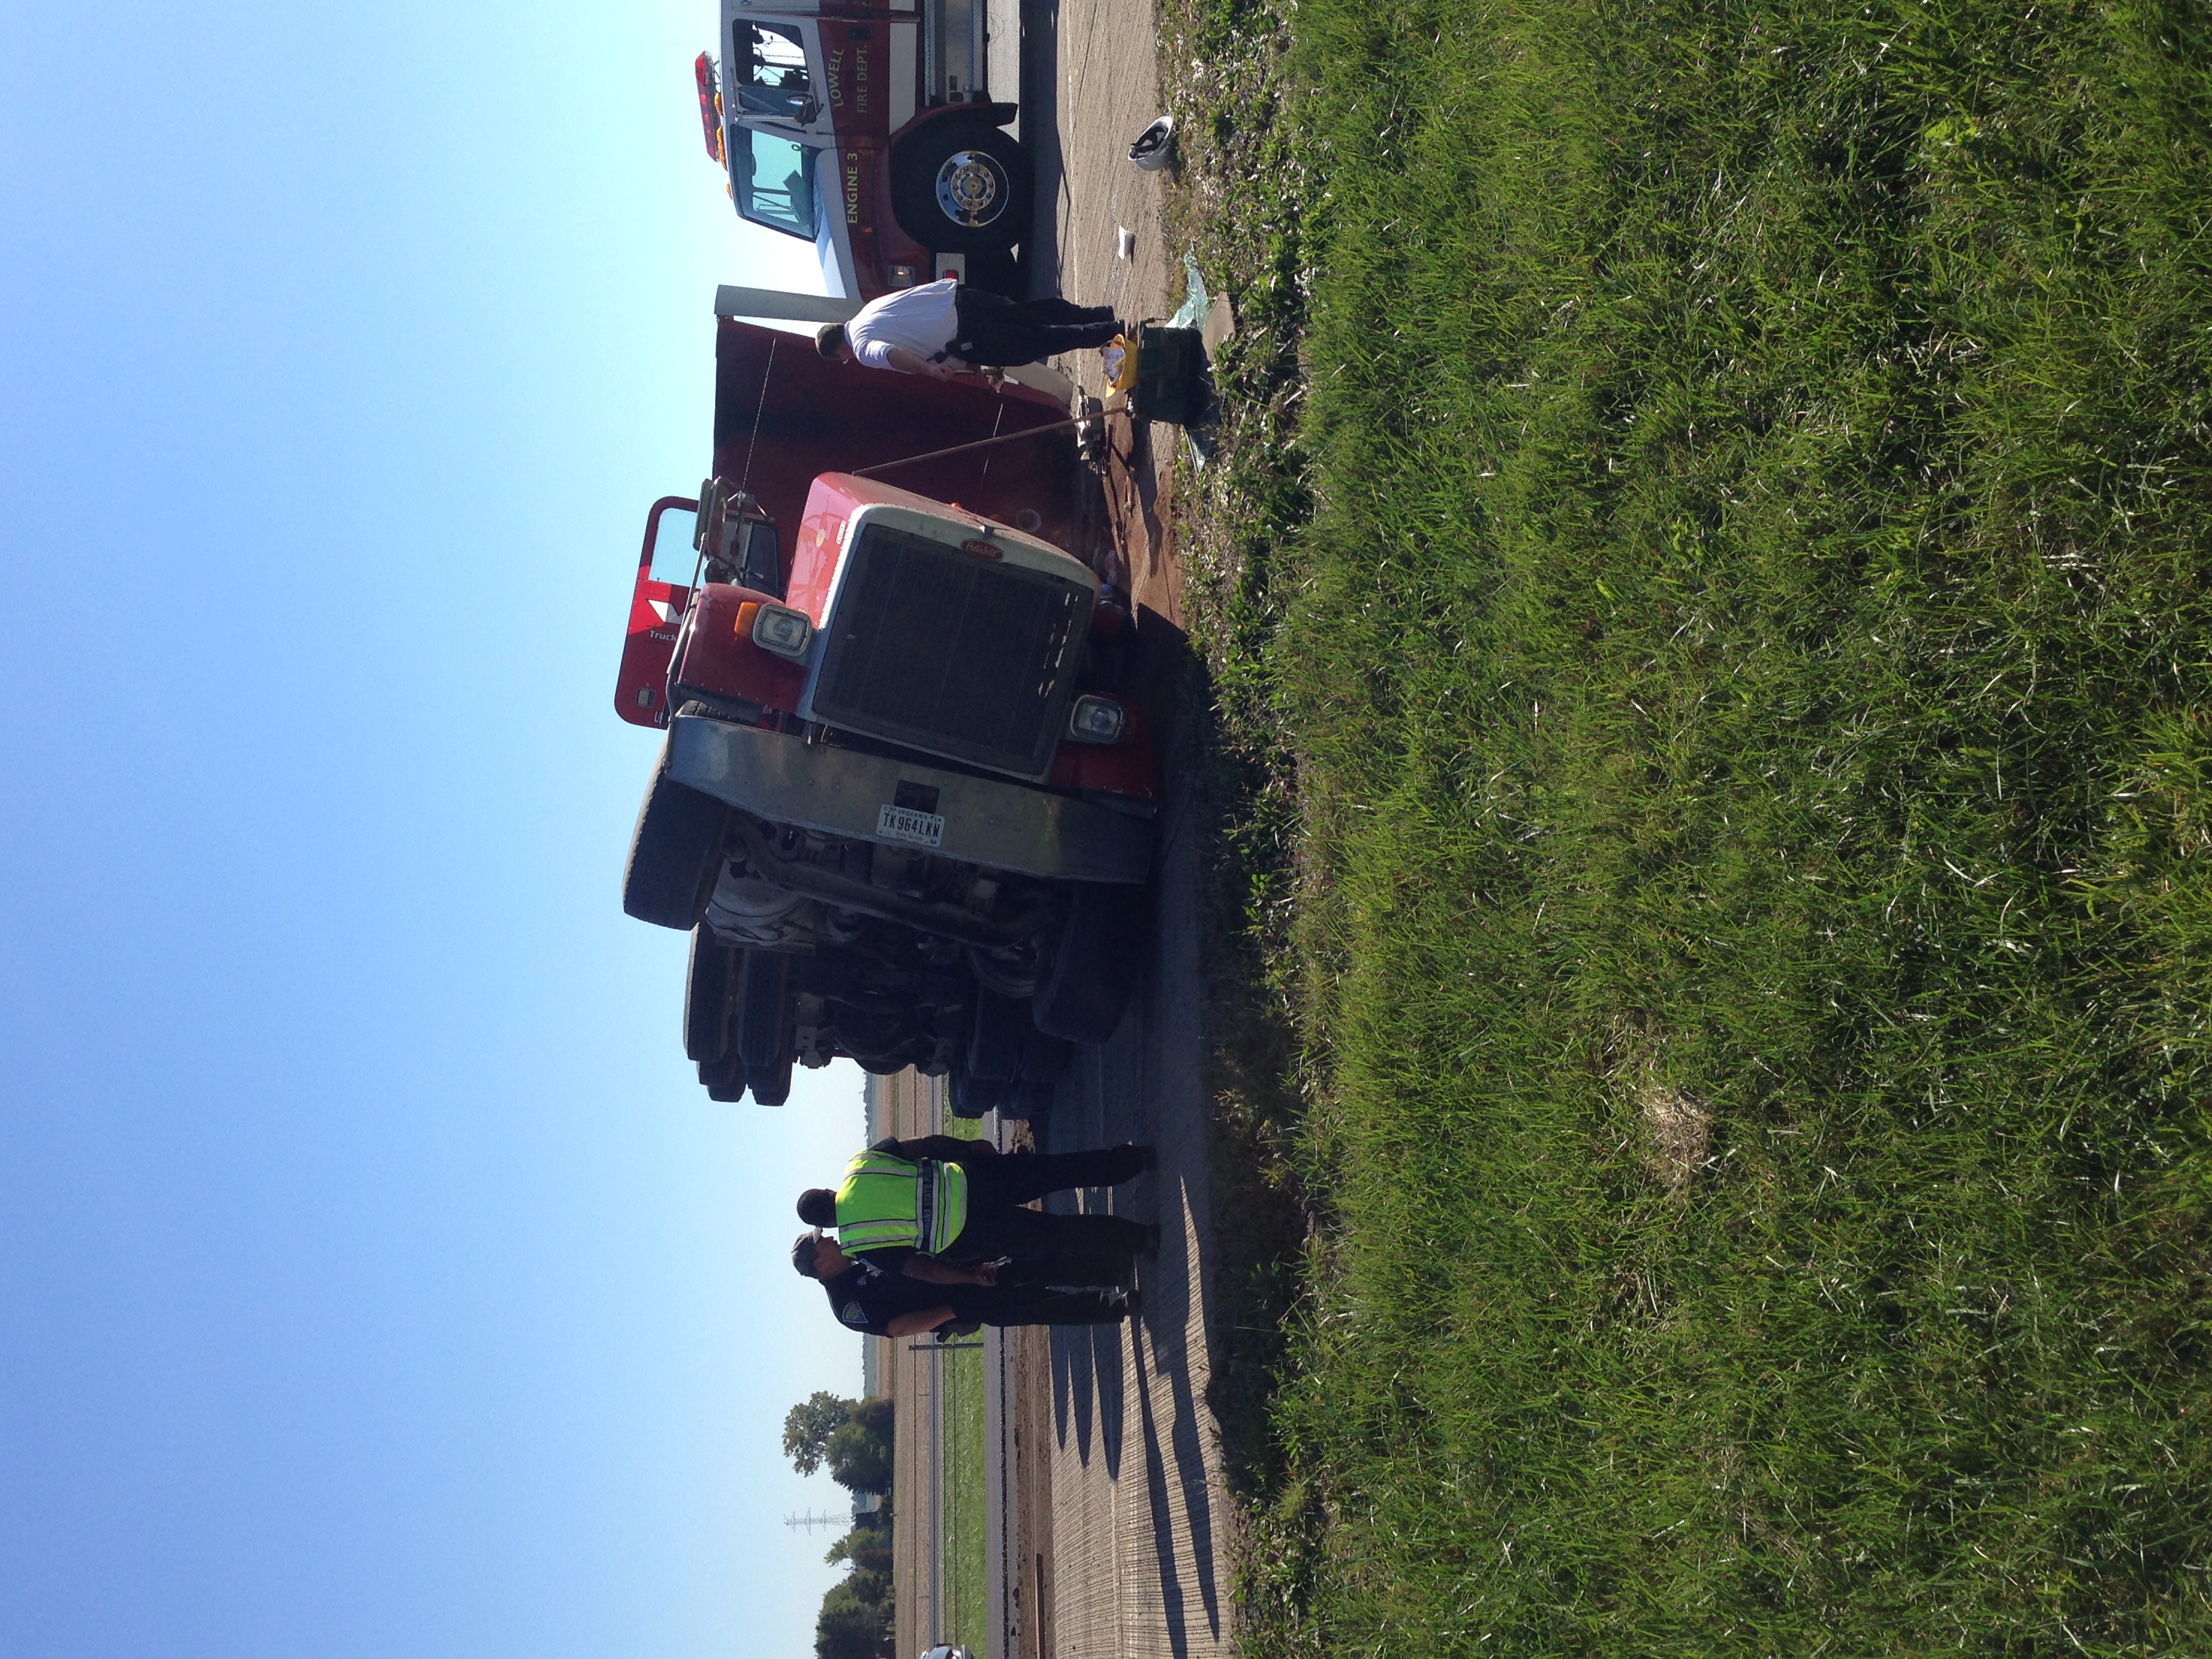 A Semi rolled over on I-65 north of Lowell today